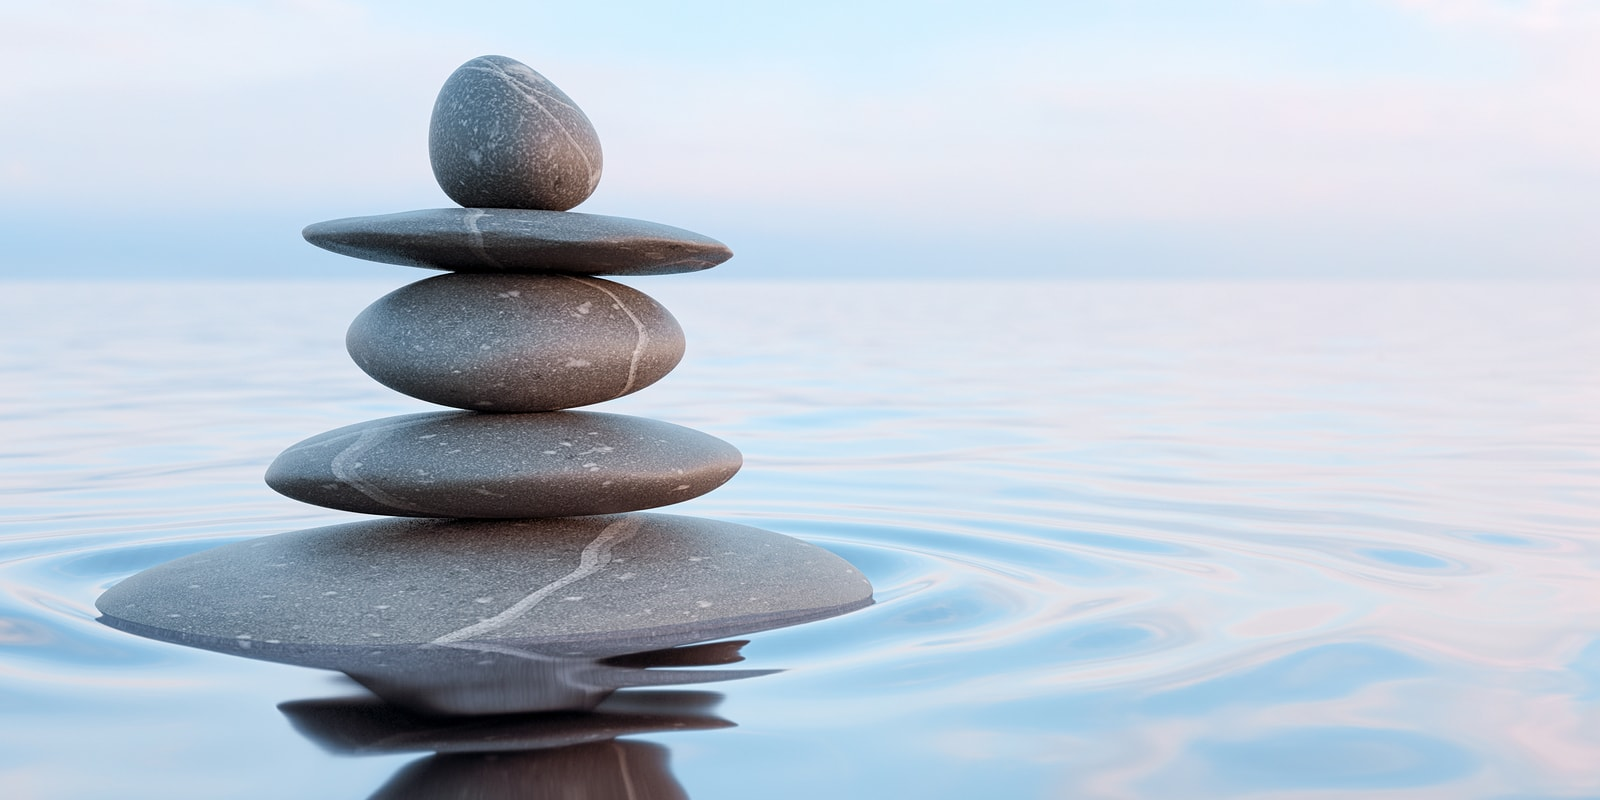 stack of stones sitting peacefully on water